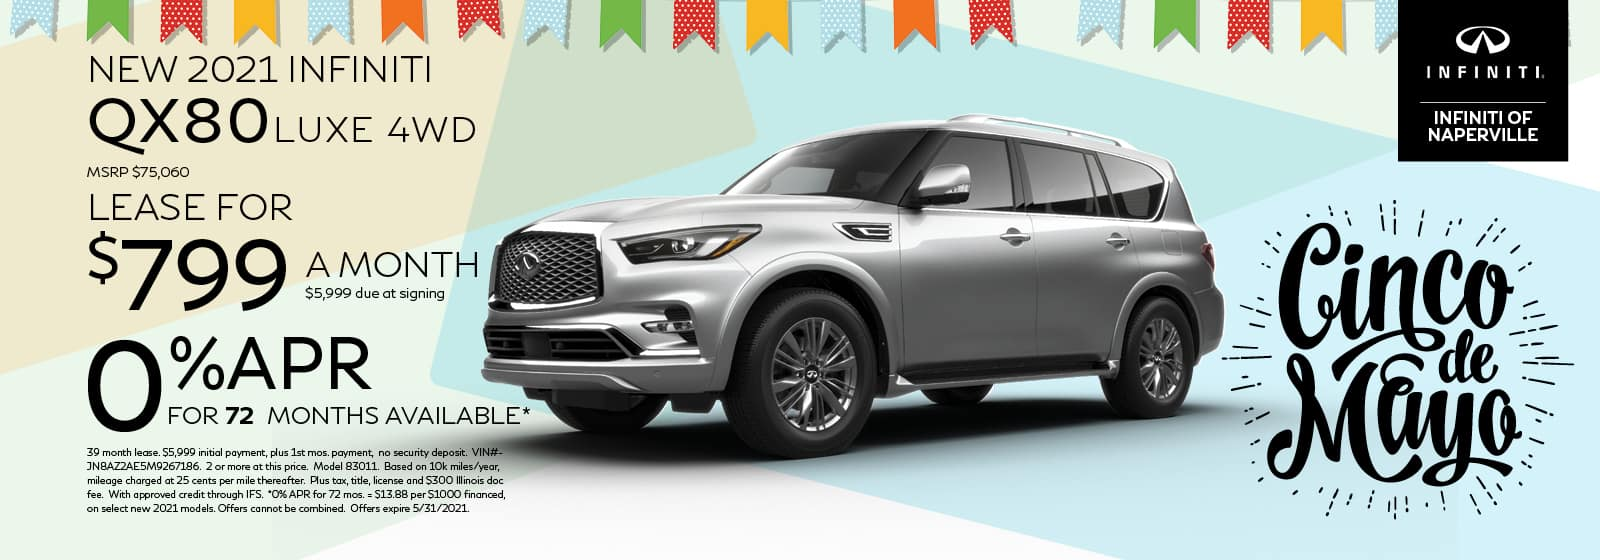 2021 INFINITI QX80 Lease or Finance Offer | INFINITI of Naperville